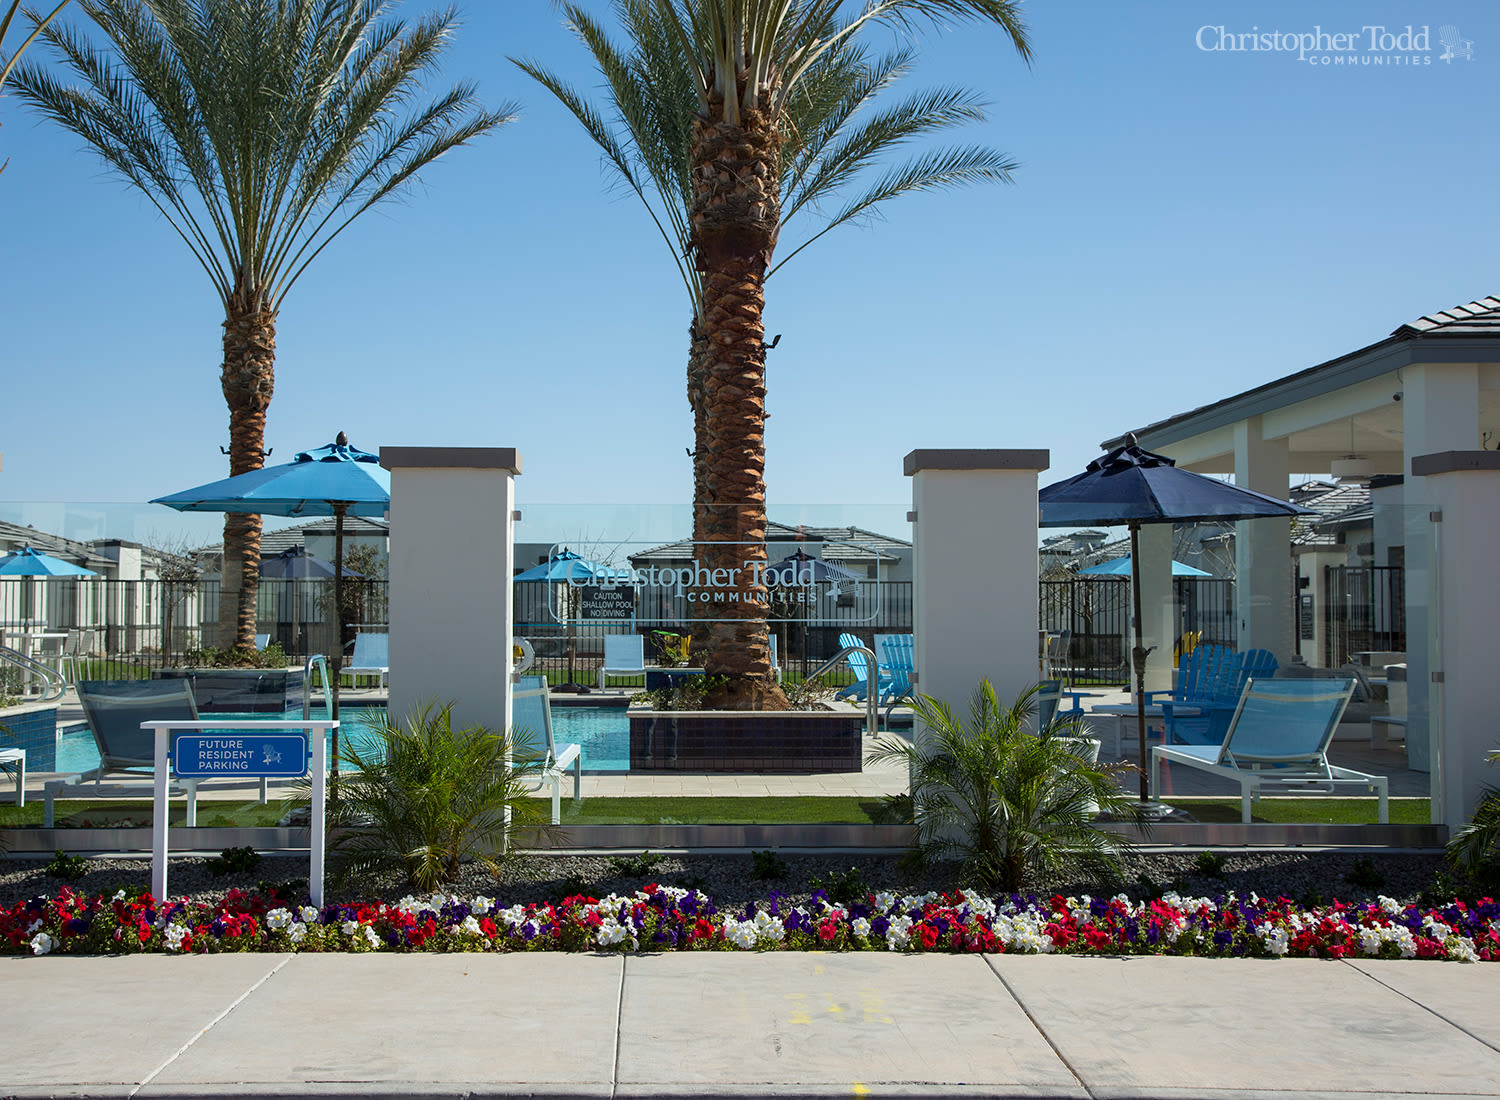 Christopher Todd Communities at Marley Park apartments in Surprise, Arizona